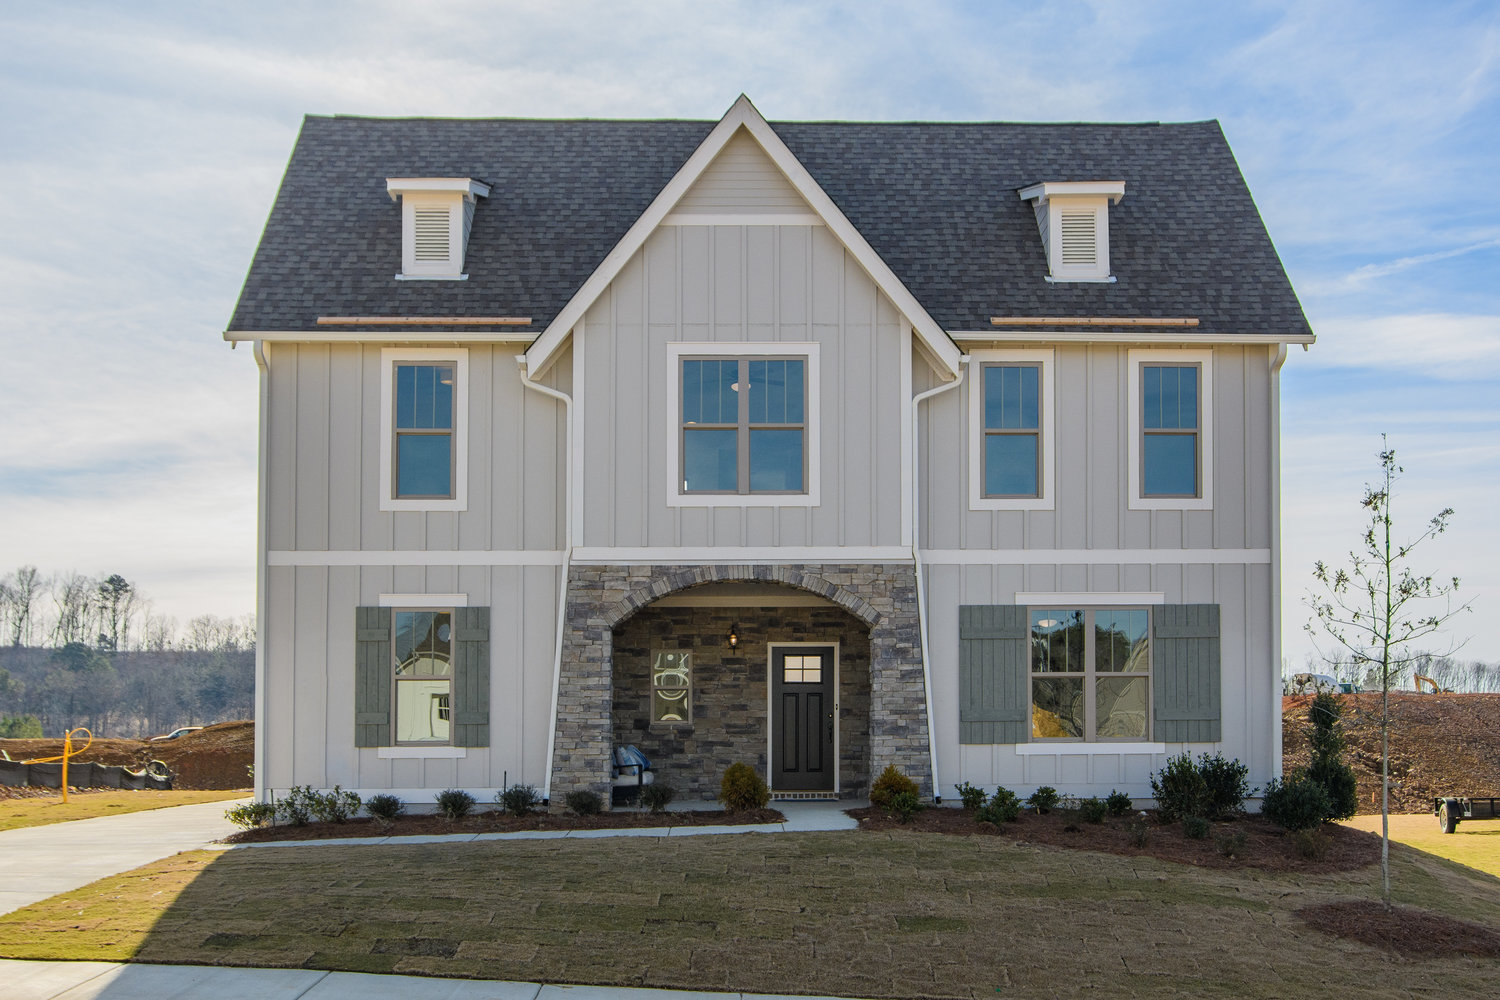 Virtual Tour of Birmingham Metro Real Estate Listing For Sale | 4950 Natalie Way, Trussville, AL 35173